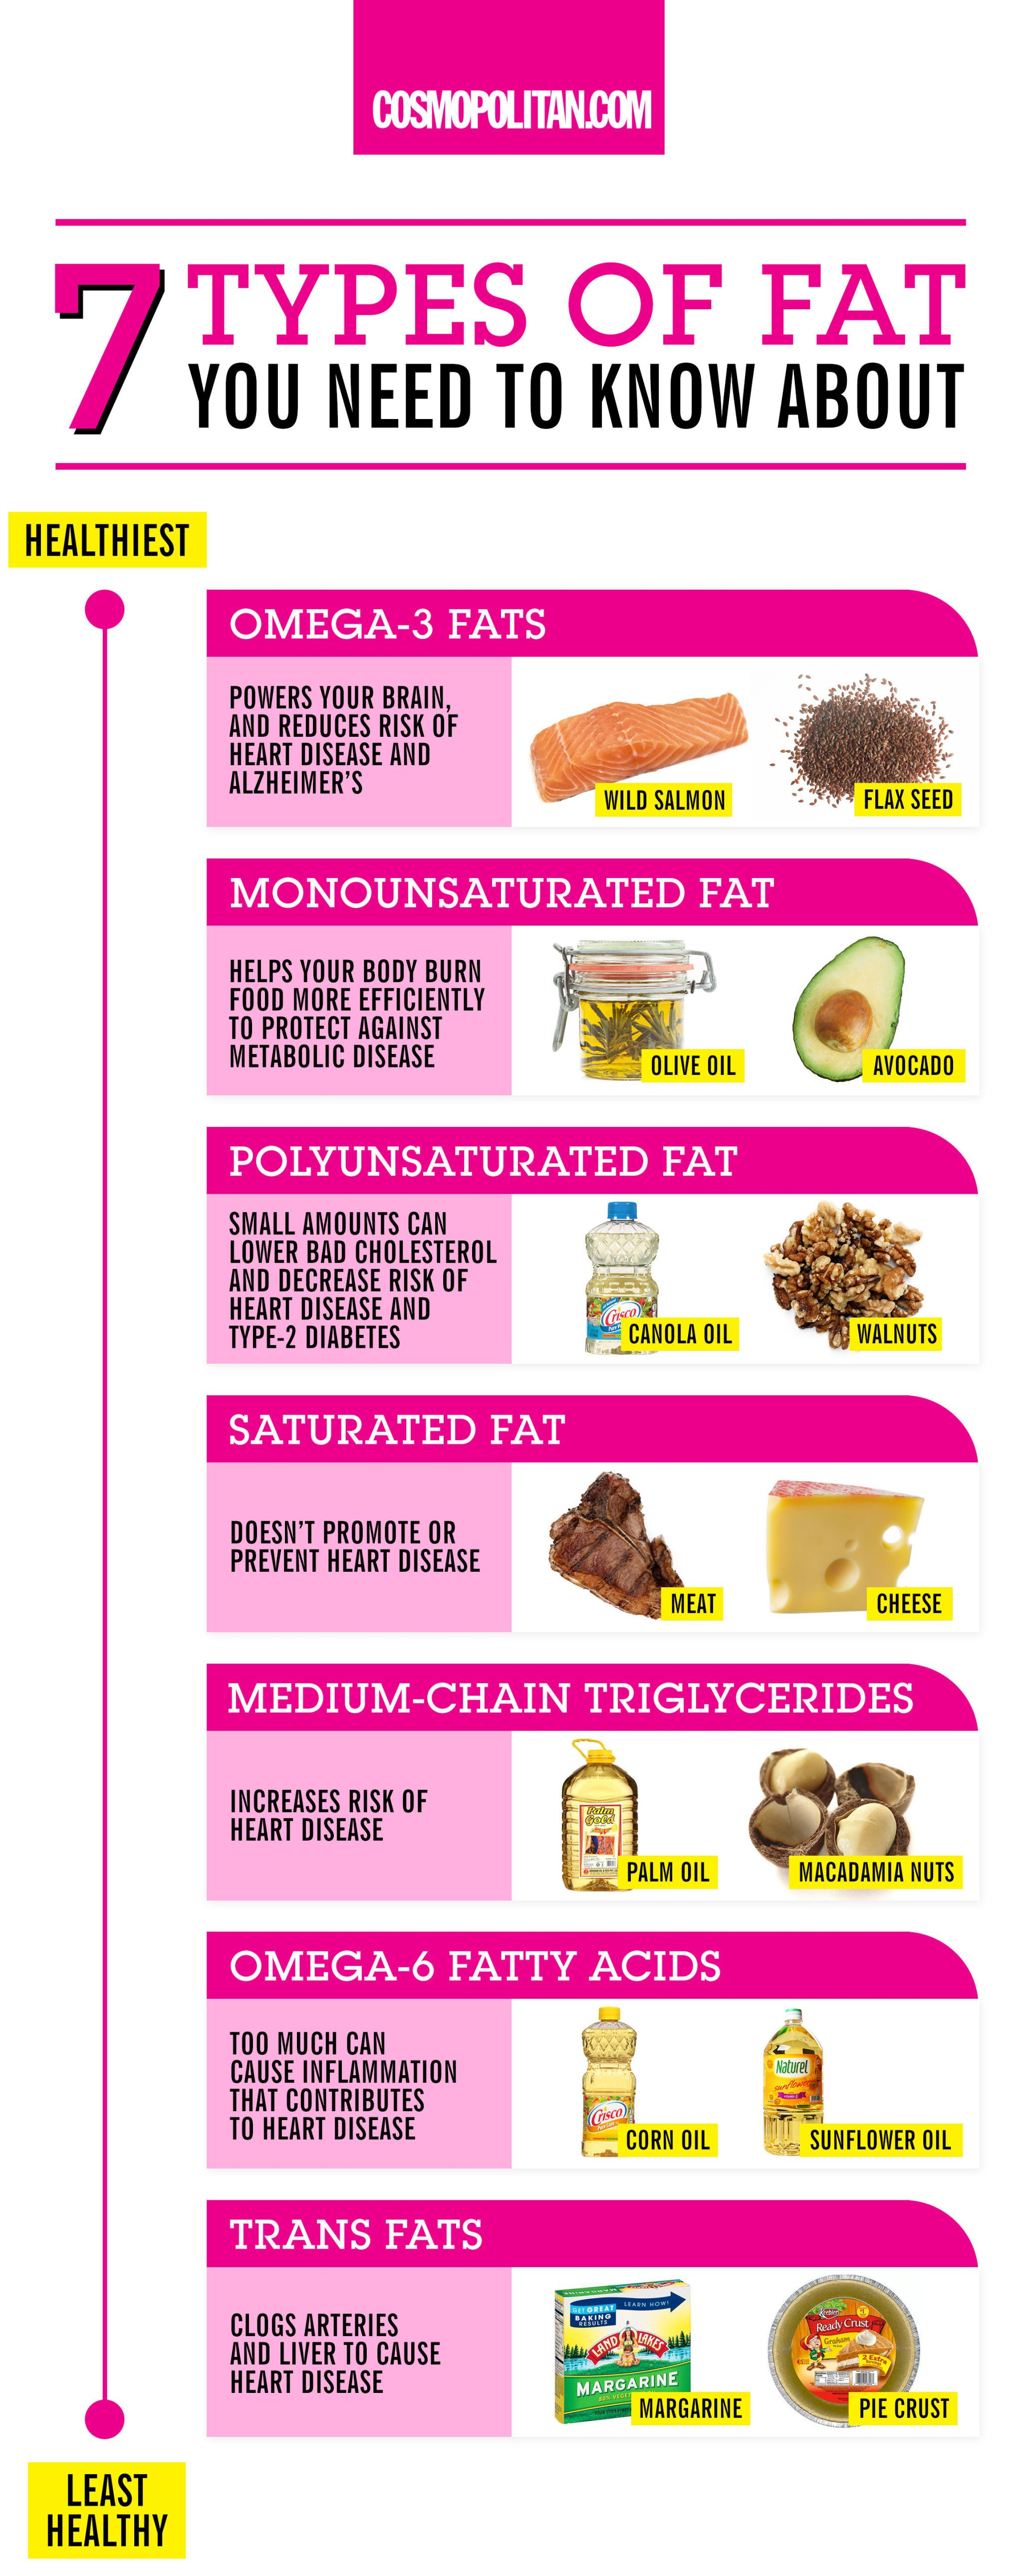 Foods to stop eating to lose weight